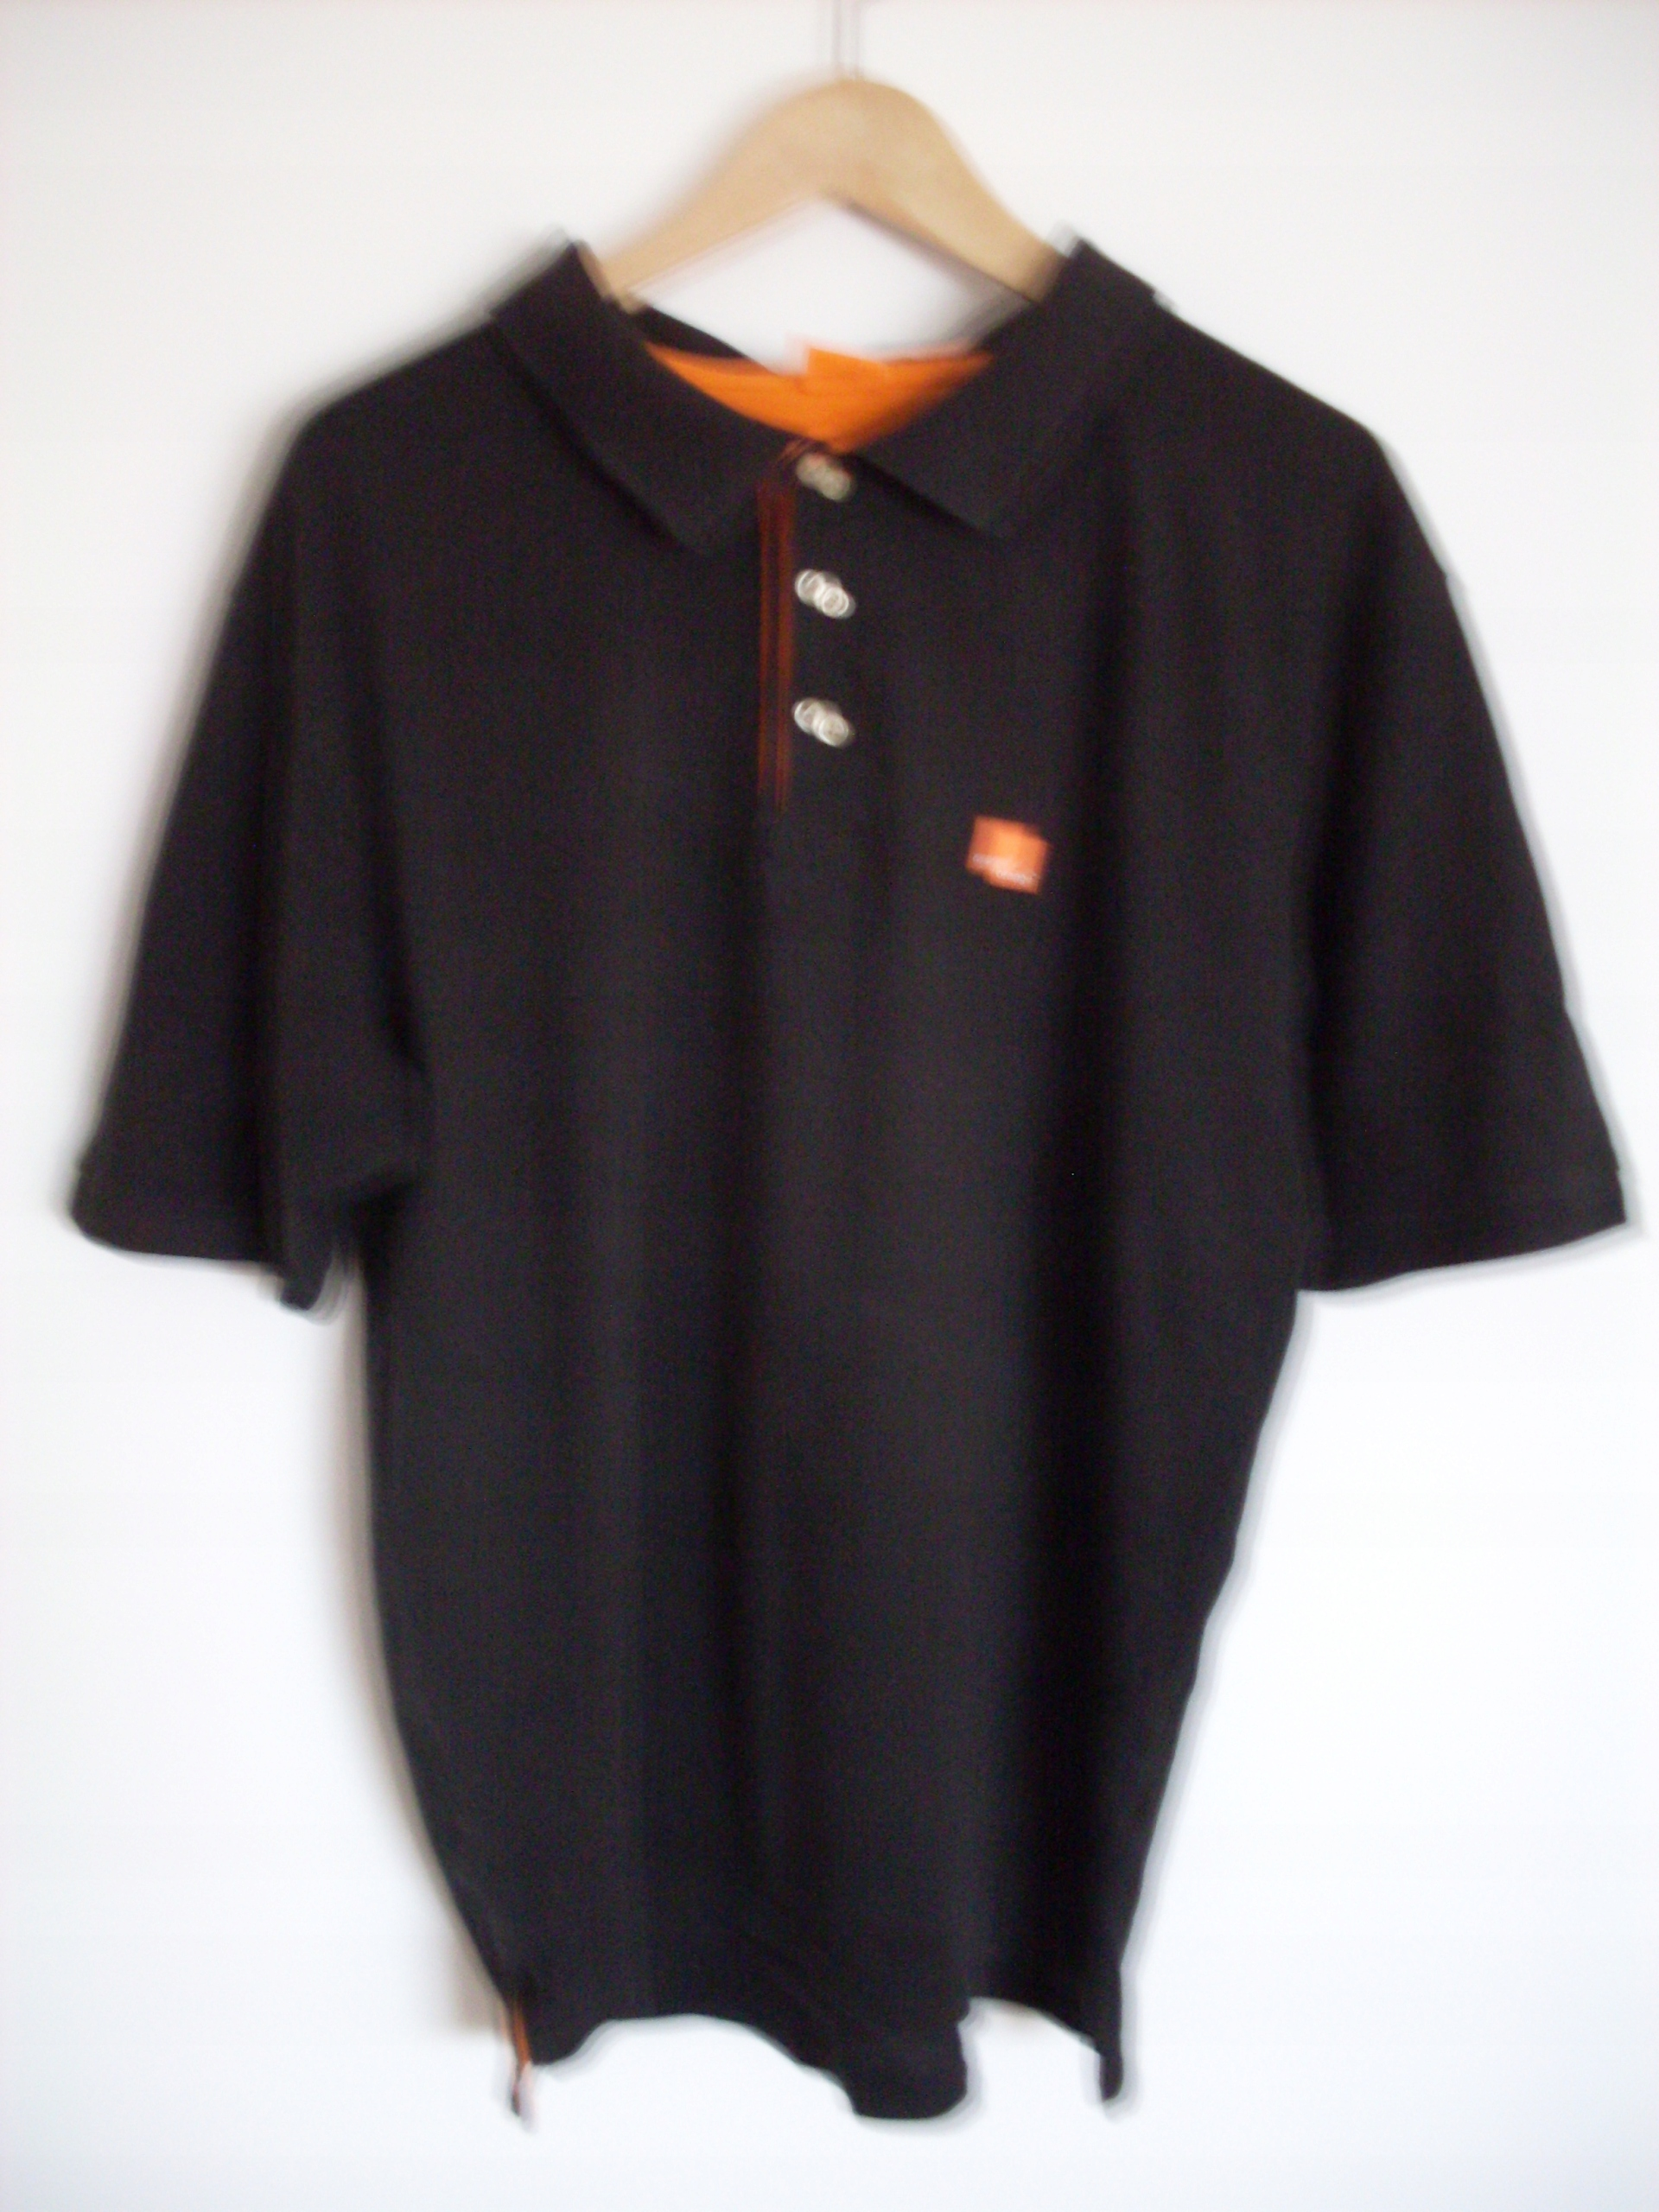 T-SHIRT / KOSZULKA POLO / ORANGE / M